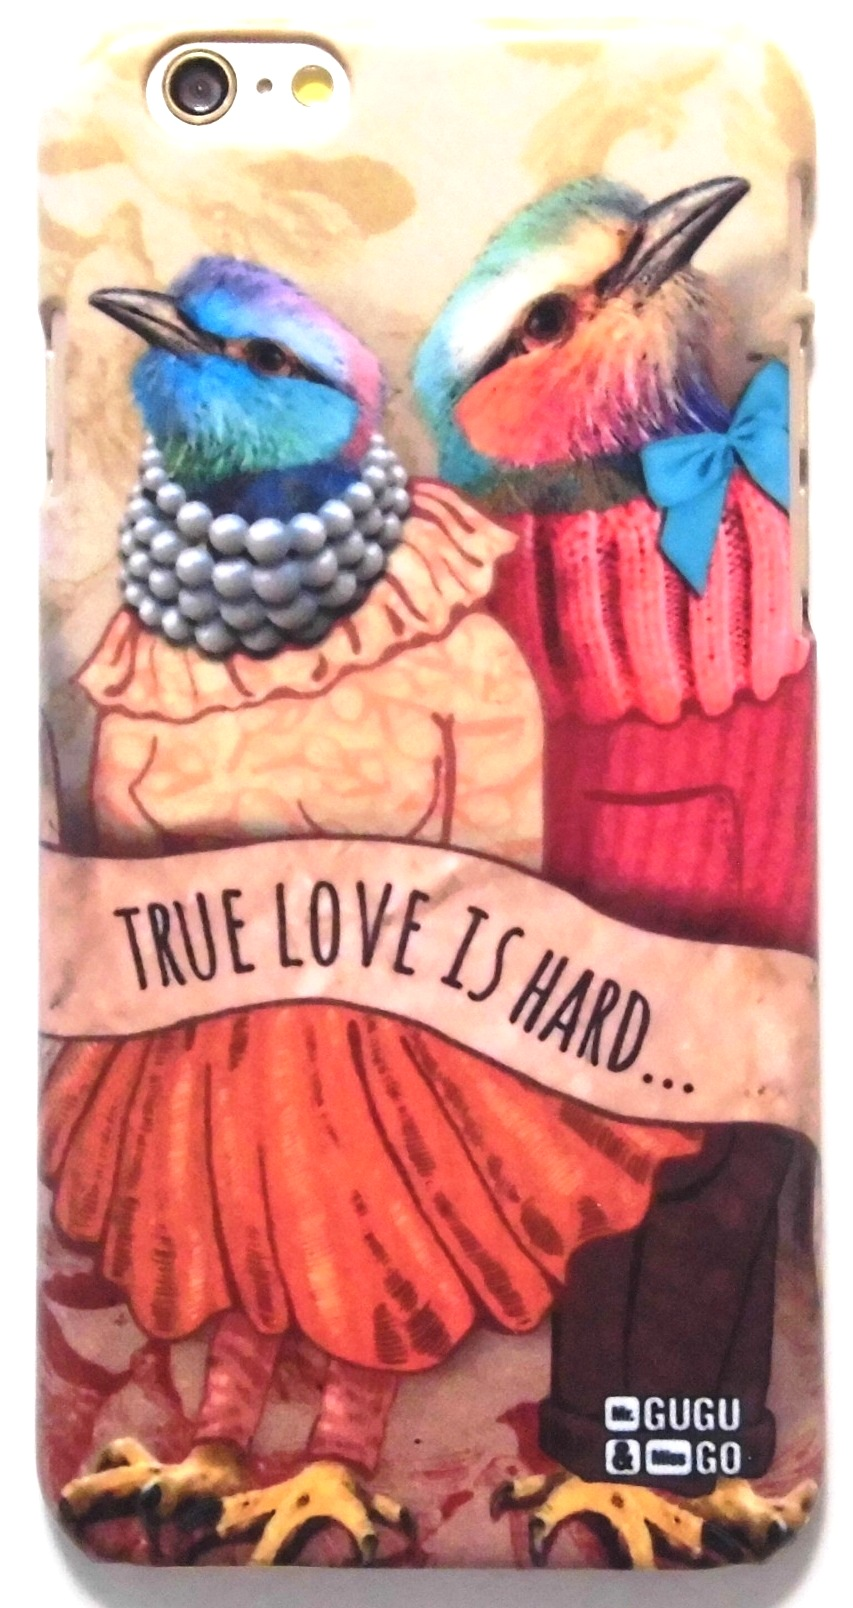 True love phone case iphone 6 6s (2)